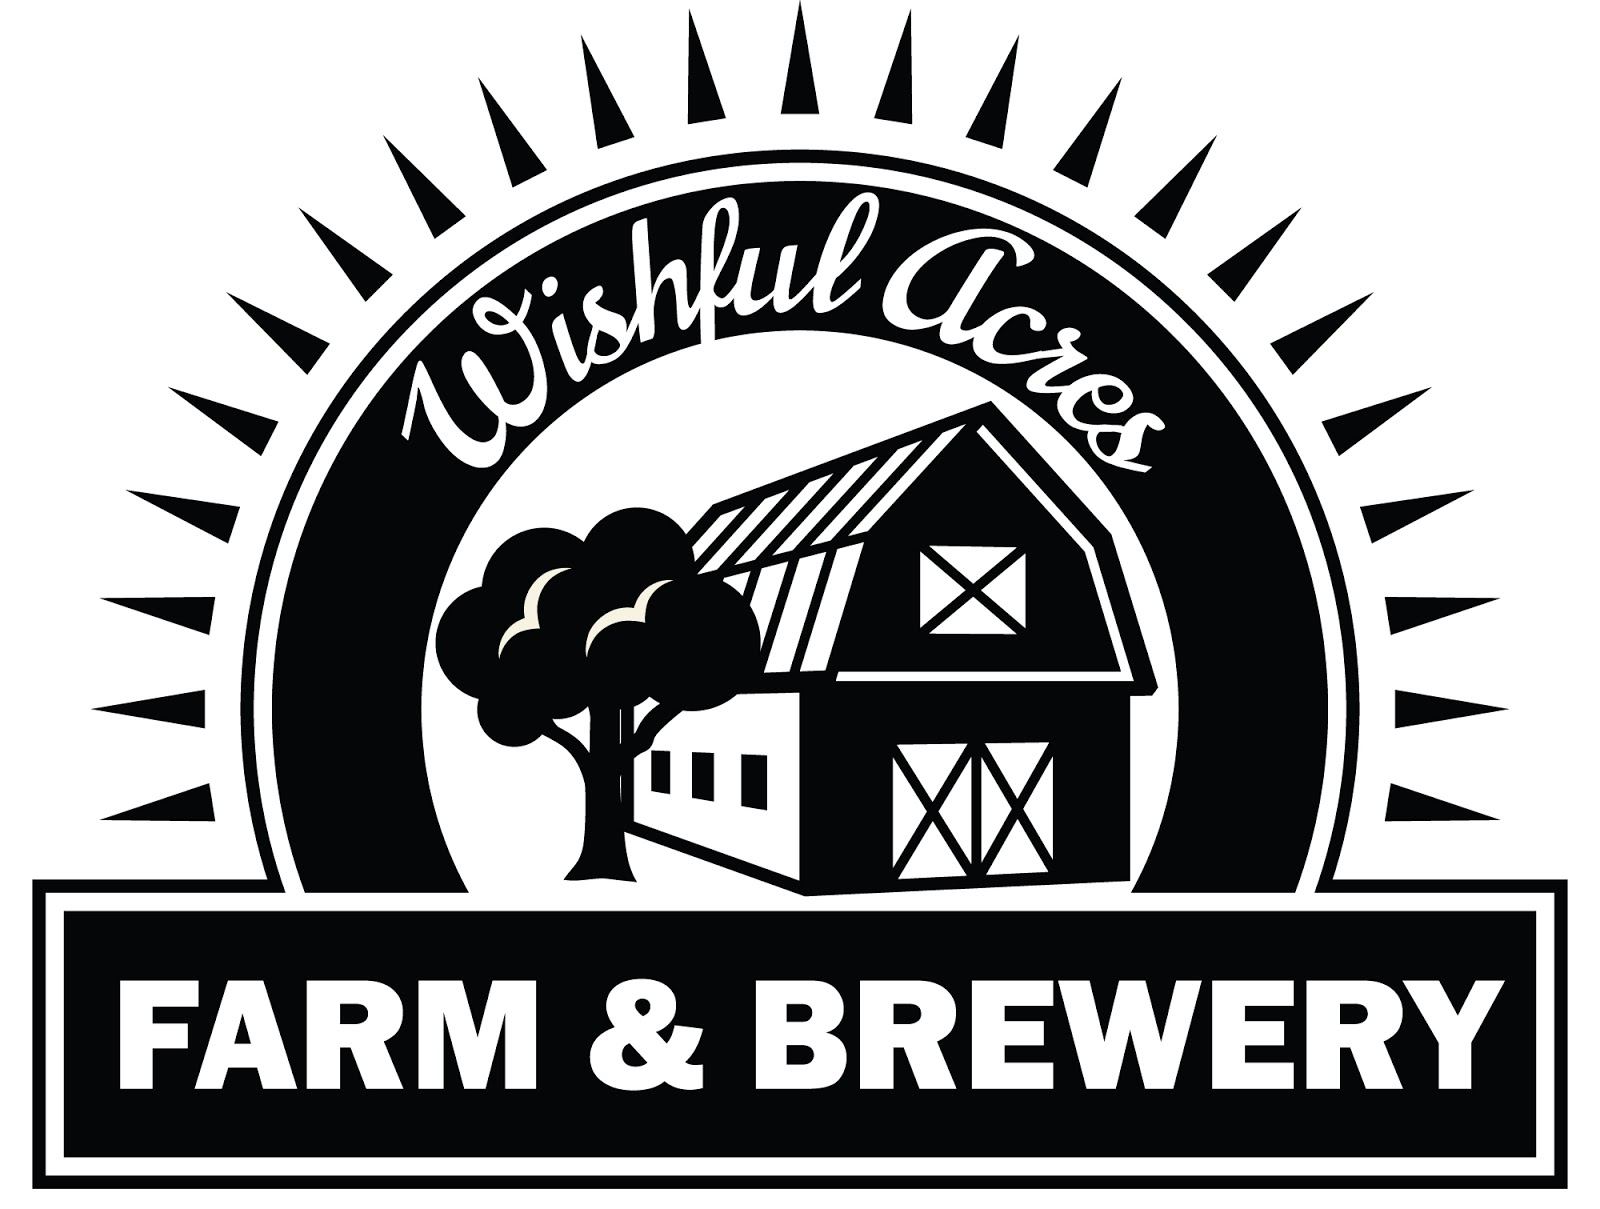 Wishful Acres Farm blog We re Expanding Our Farm Brewery & Name Cha